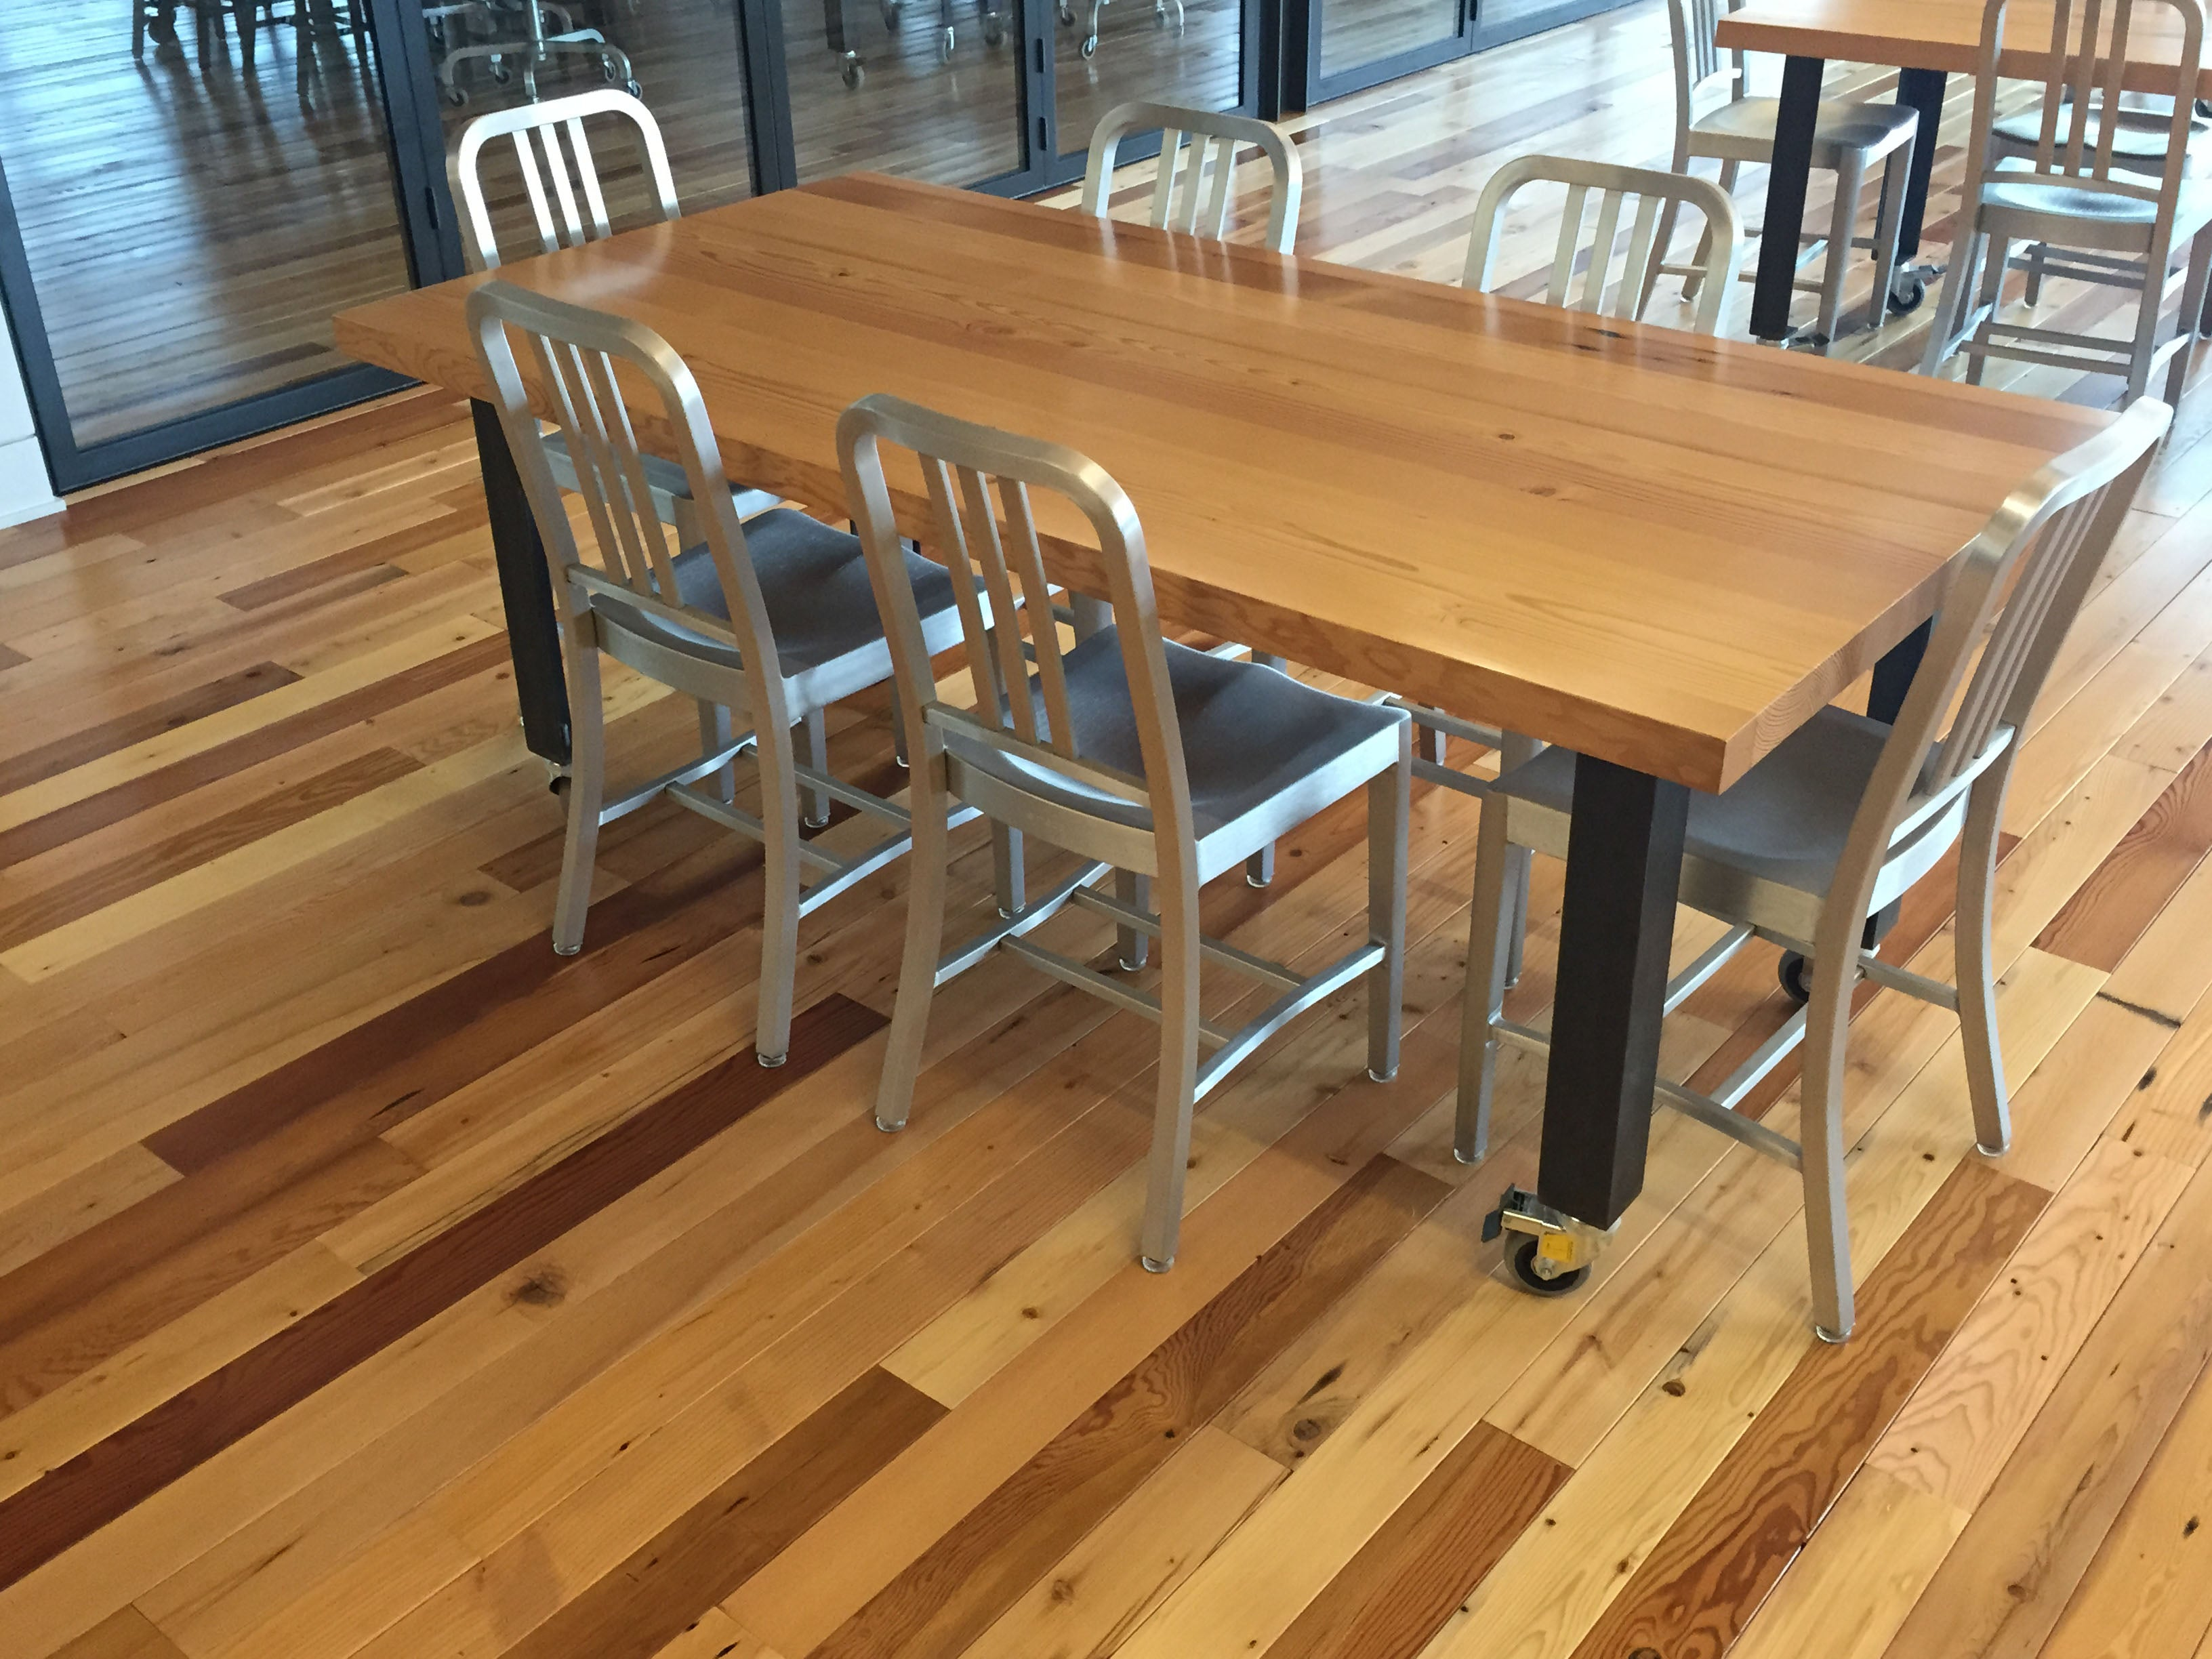 Reclaimed Douglas fir top, Angle Iron legs with castors |  Lease Crutcher Lewis HQ